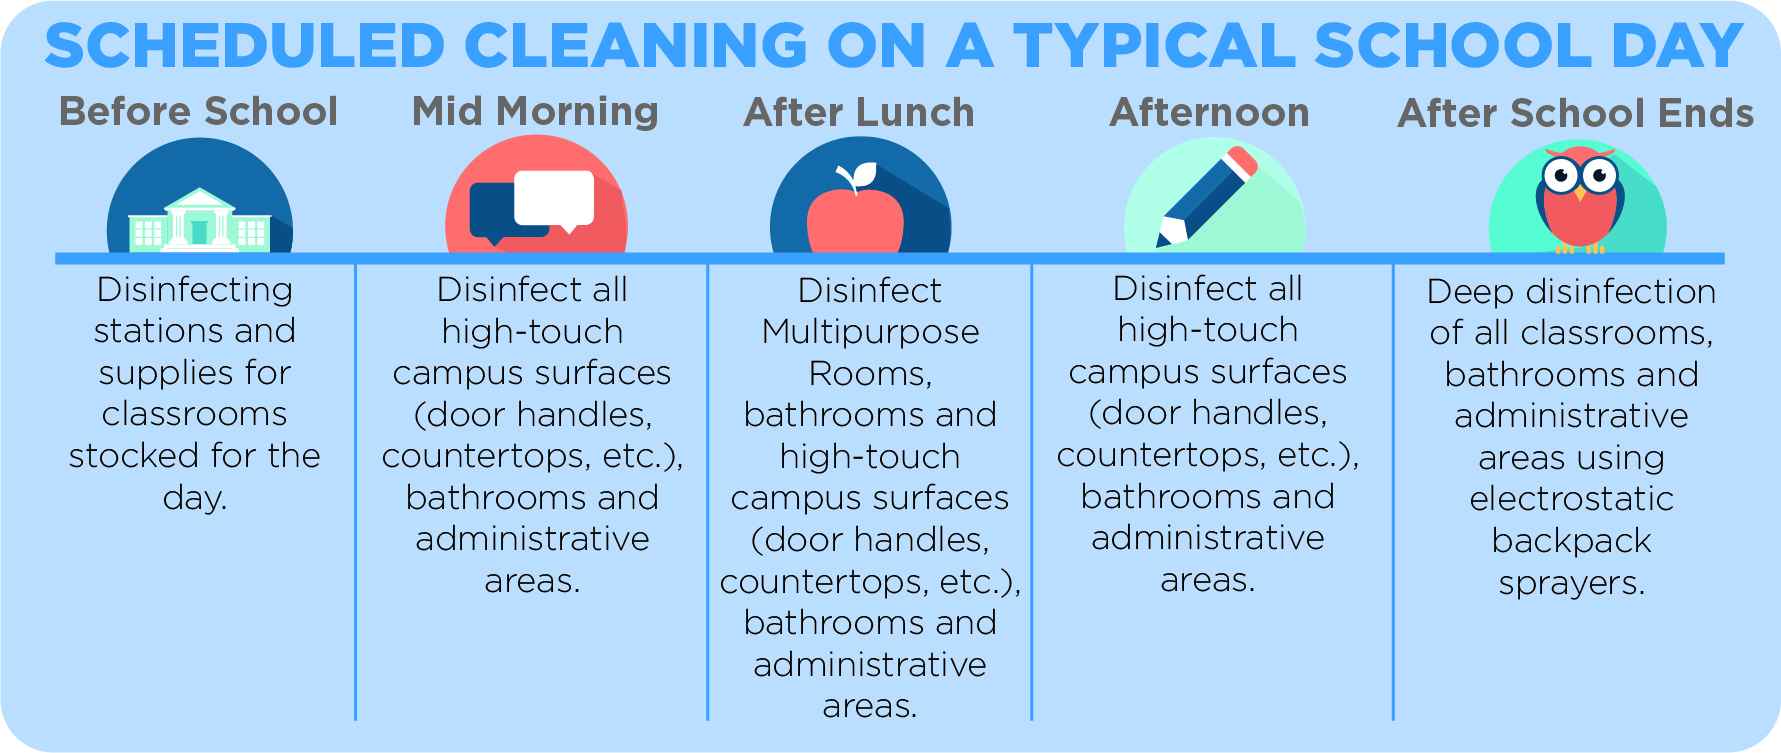 Scheduled Cleaning on a Typical School Day, Content Below